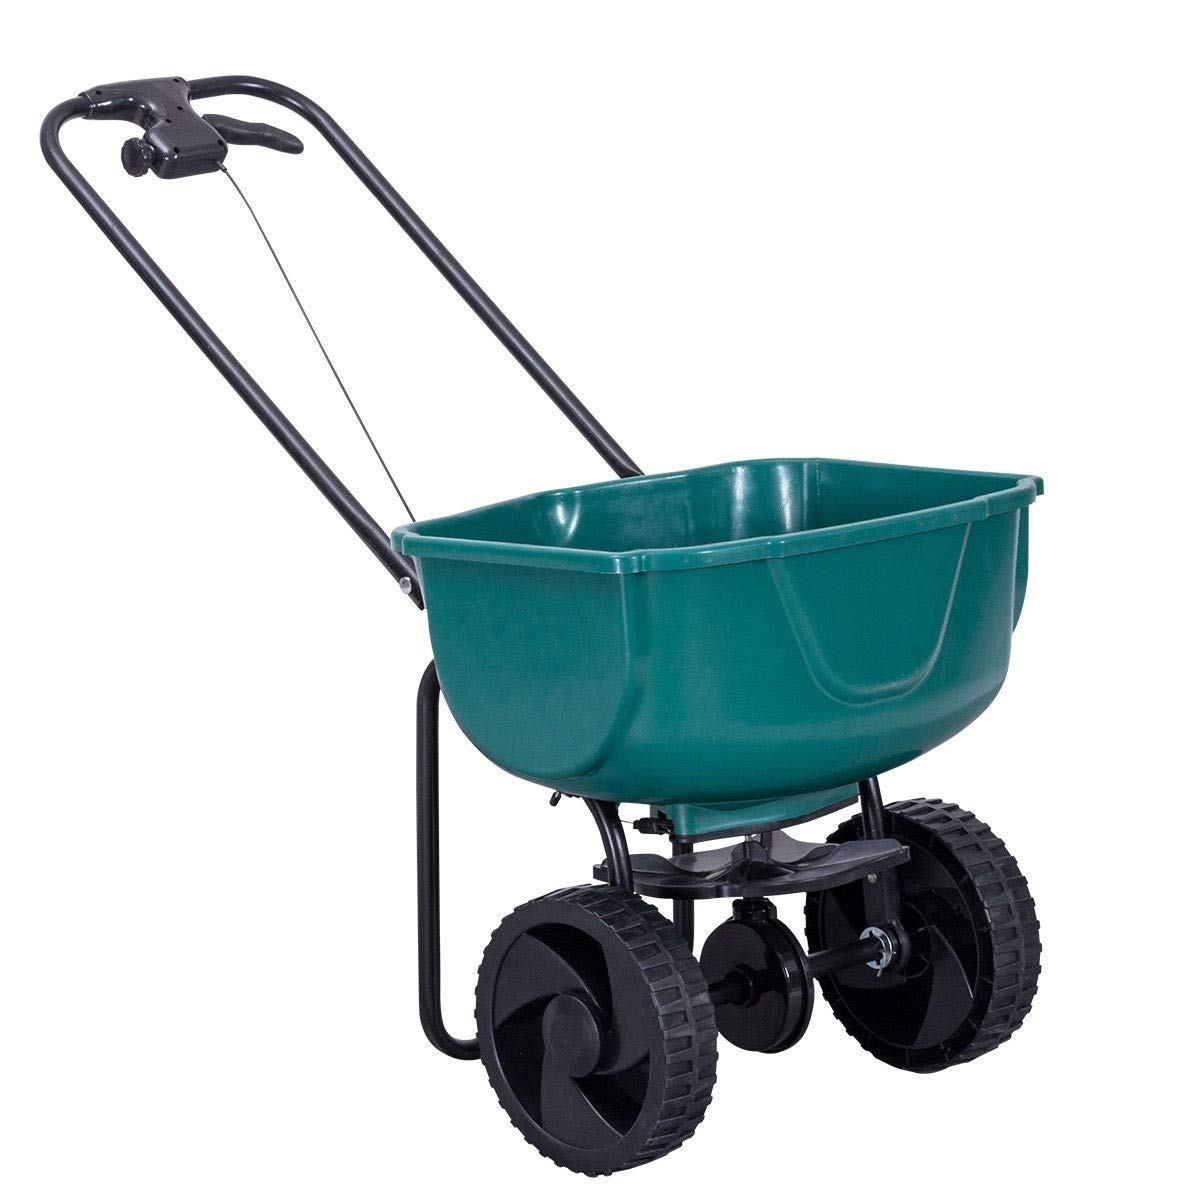 MD Group Broadcast Spreader Walk Behind Push Seeder Garden Fertilizer 44 lbs Heavy Duty Equipment